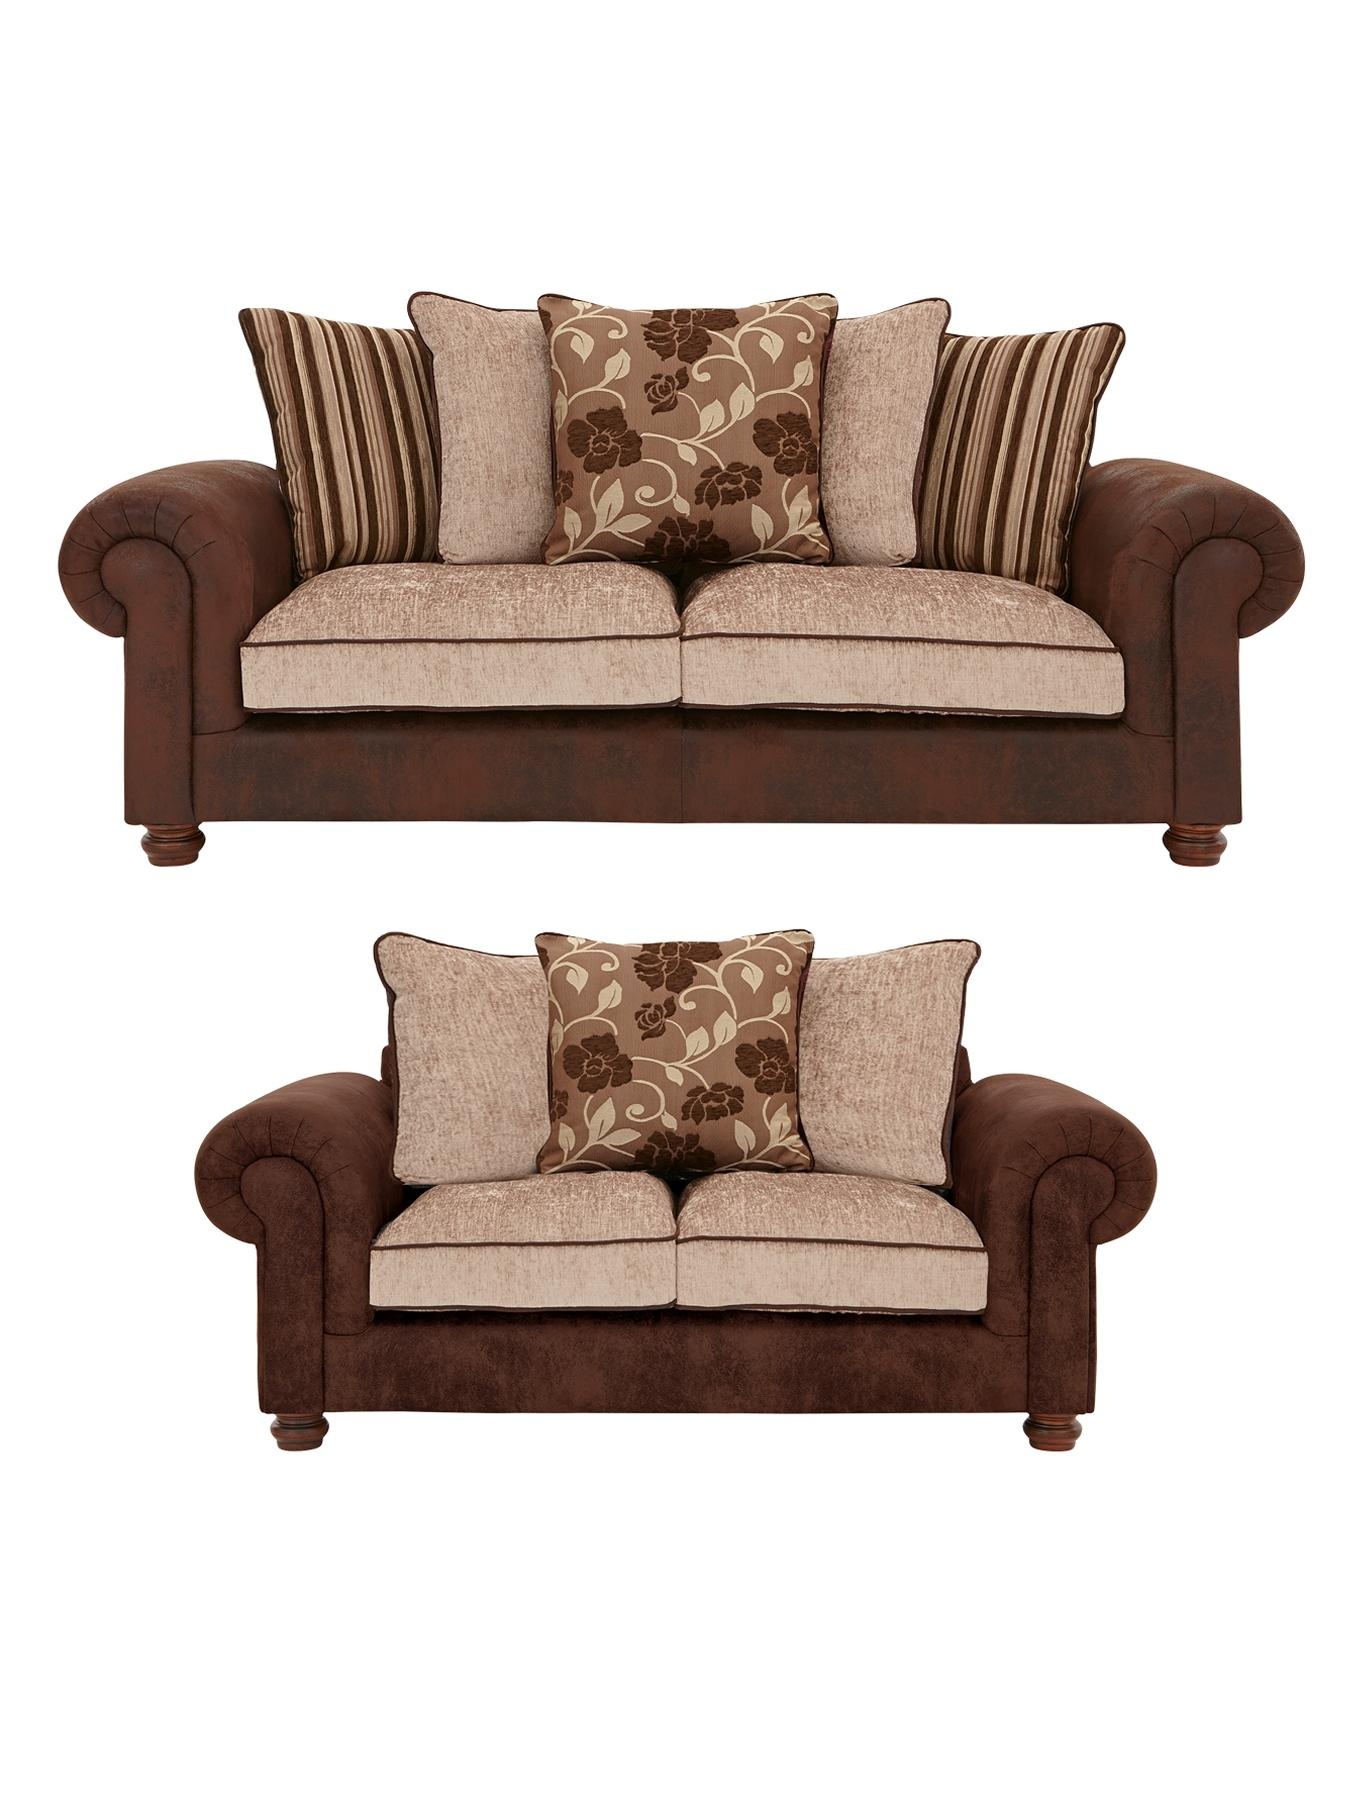 Astley 3- Seater + 2-Seater Sofa Set (Buy and SAVE!), Chocolate,Black at Littlewoods Home Shopping